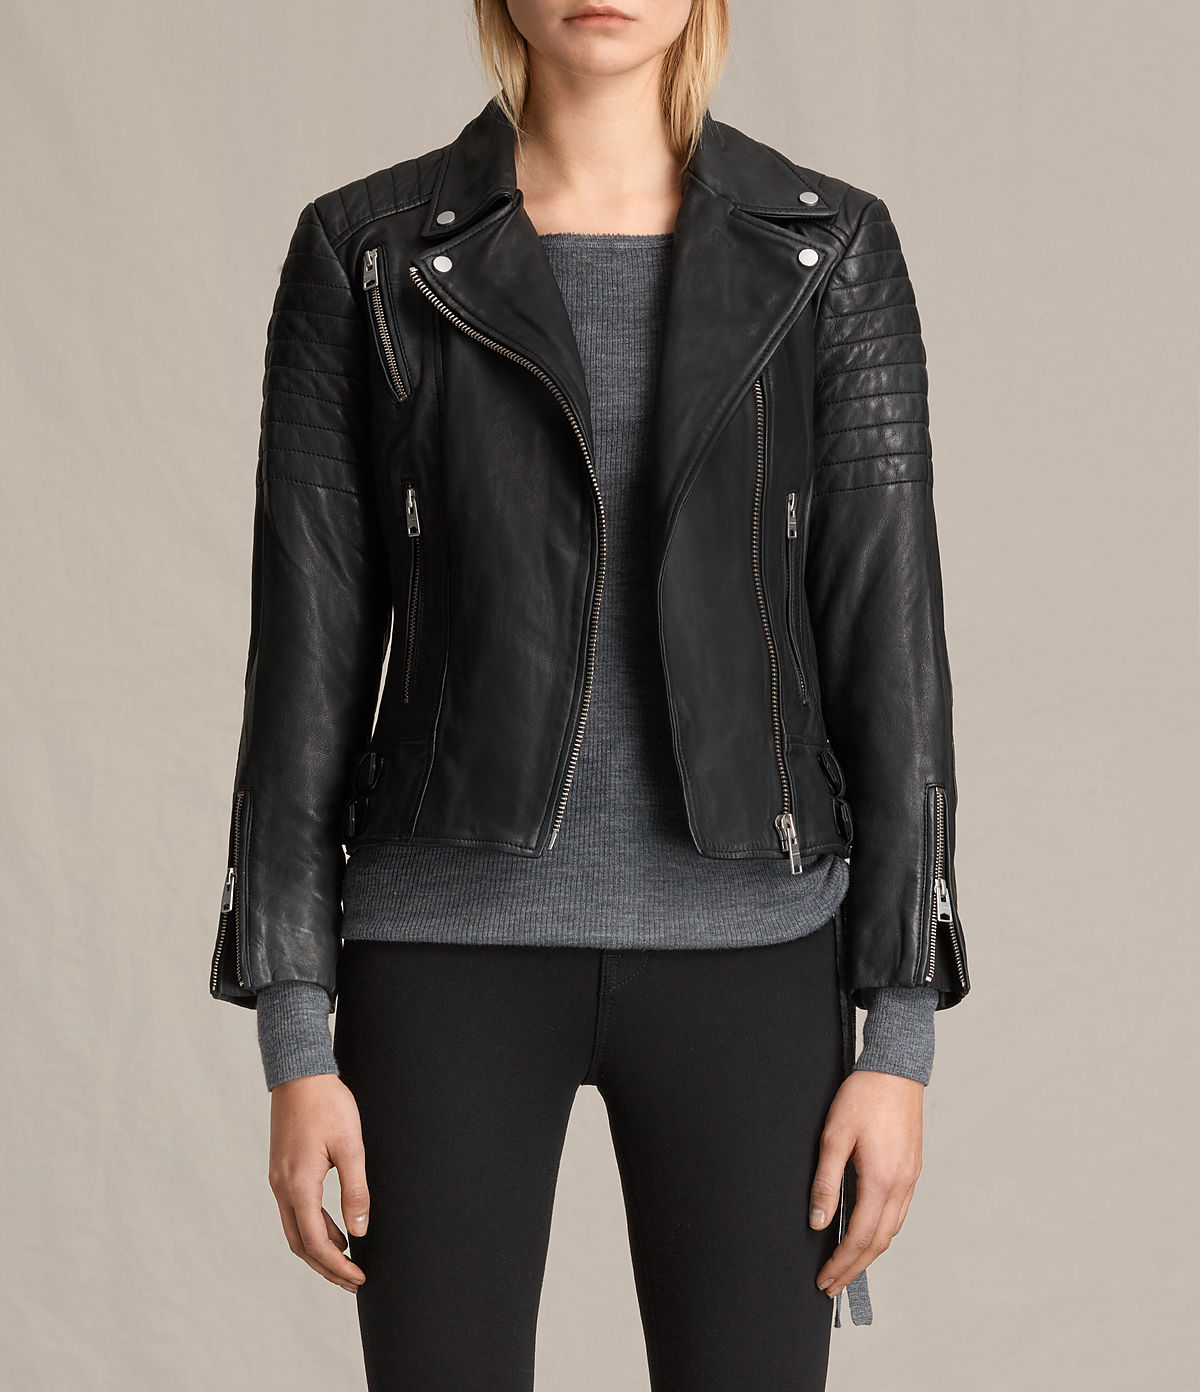 All Saints . Classic Biker, £380. Its one of the best sellers, and its a brilliant jacket. I could have chosen any of the best sellers- they are excellent. I do love this one though. It is form fitting with a slightly dipped back, the shoulders are stitched detail rather than padded- which can add bulk.